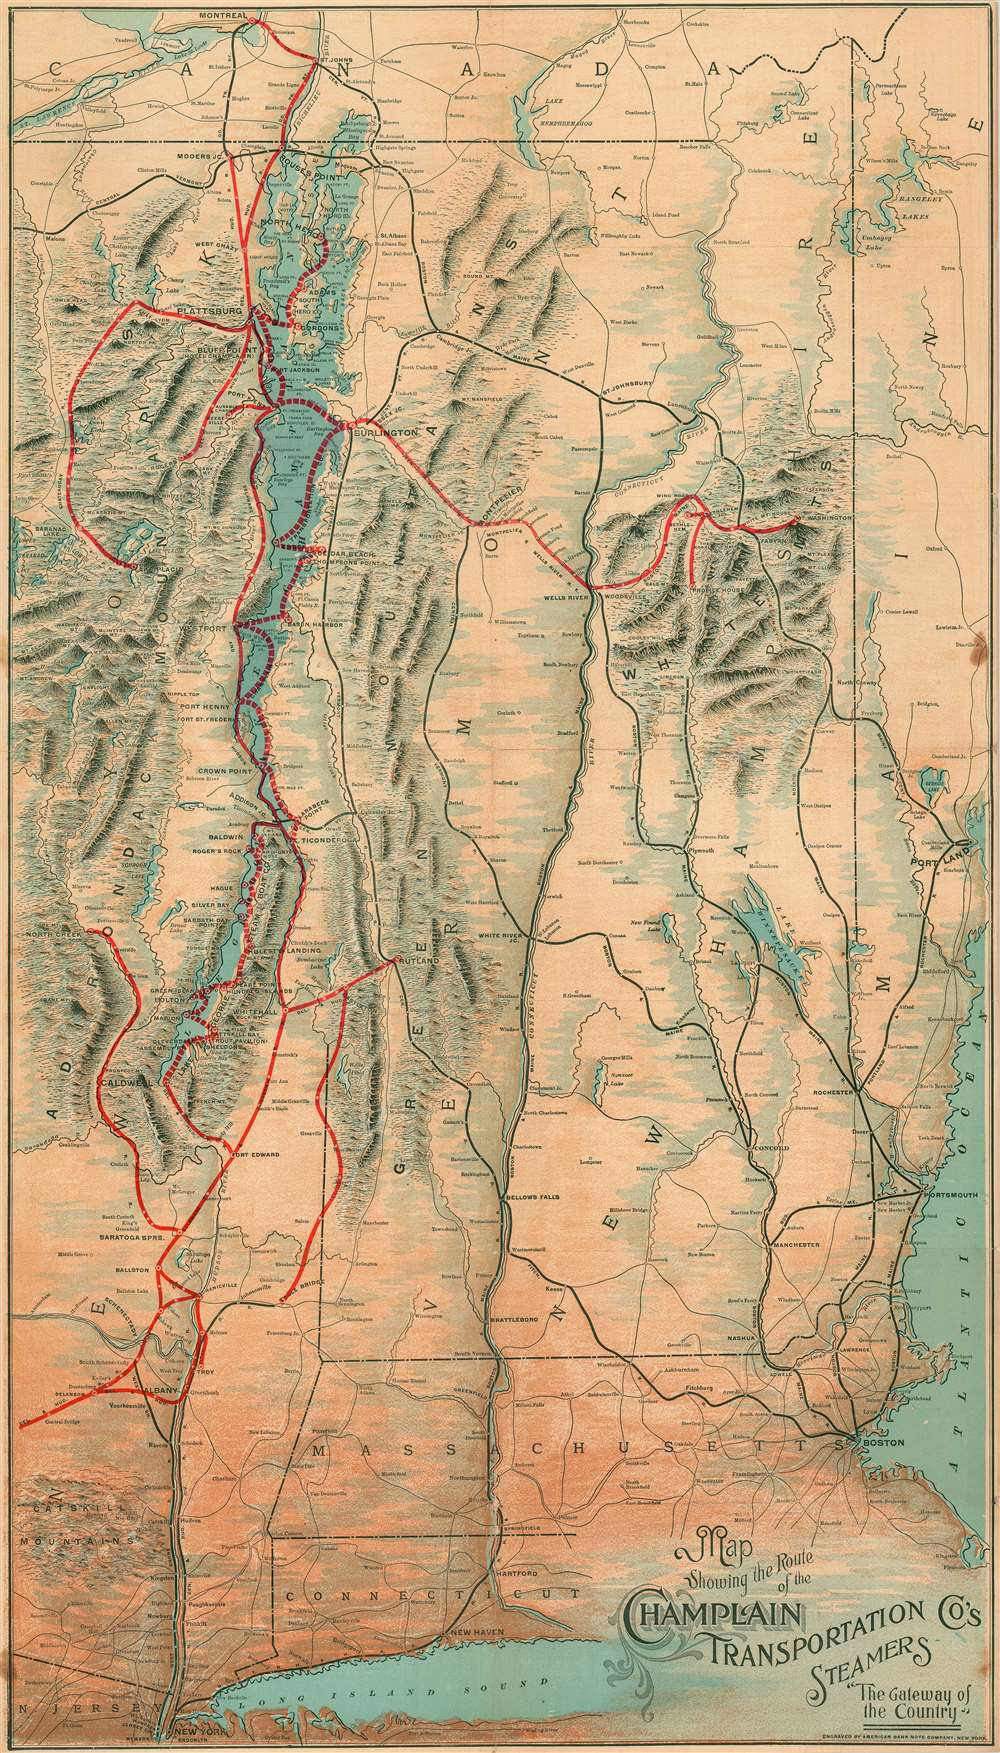 Showing the Route of the Champlain Transportation Co's Steamers.  The Gateway of the Country. - Main View